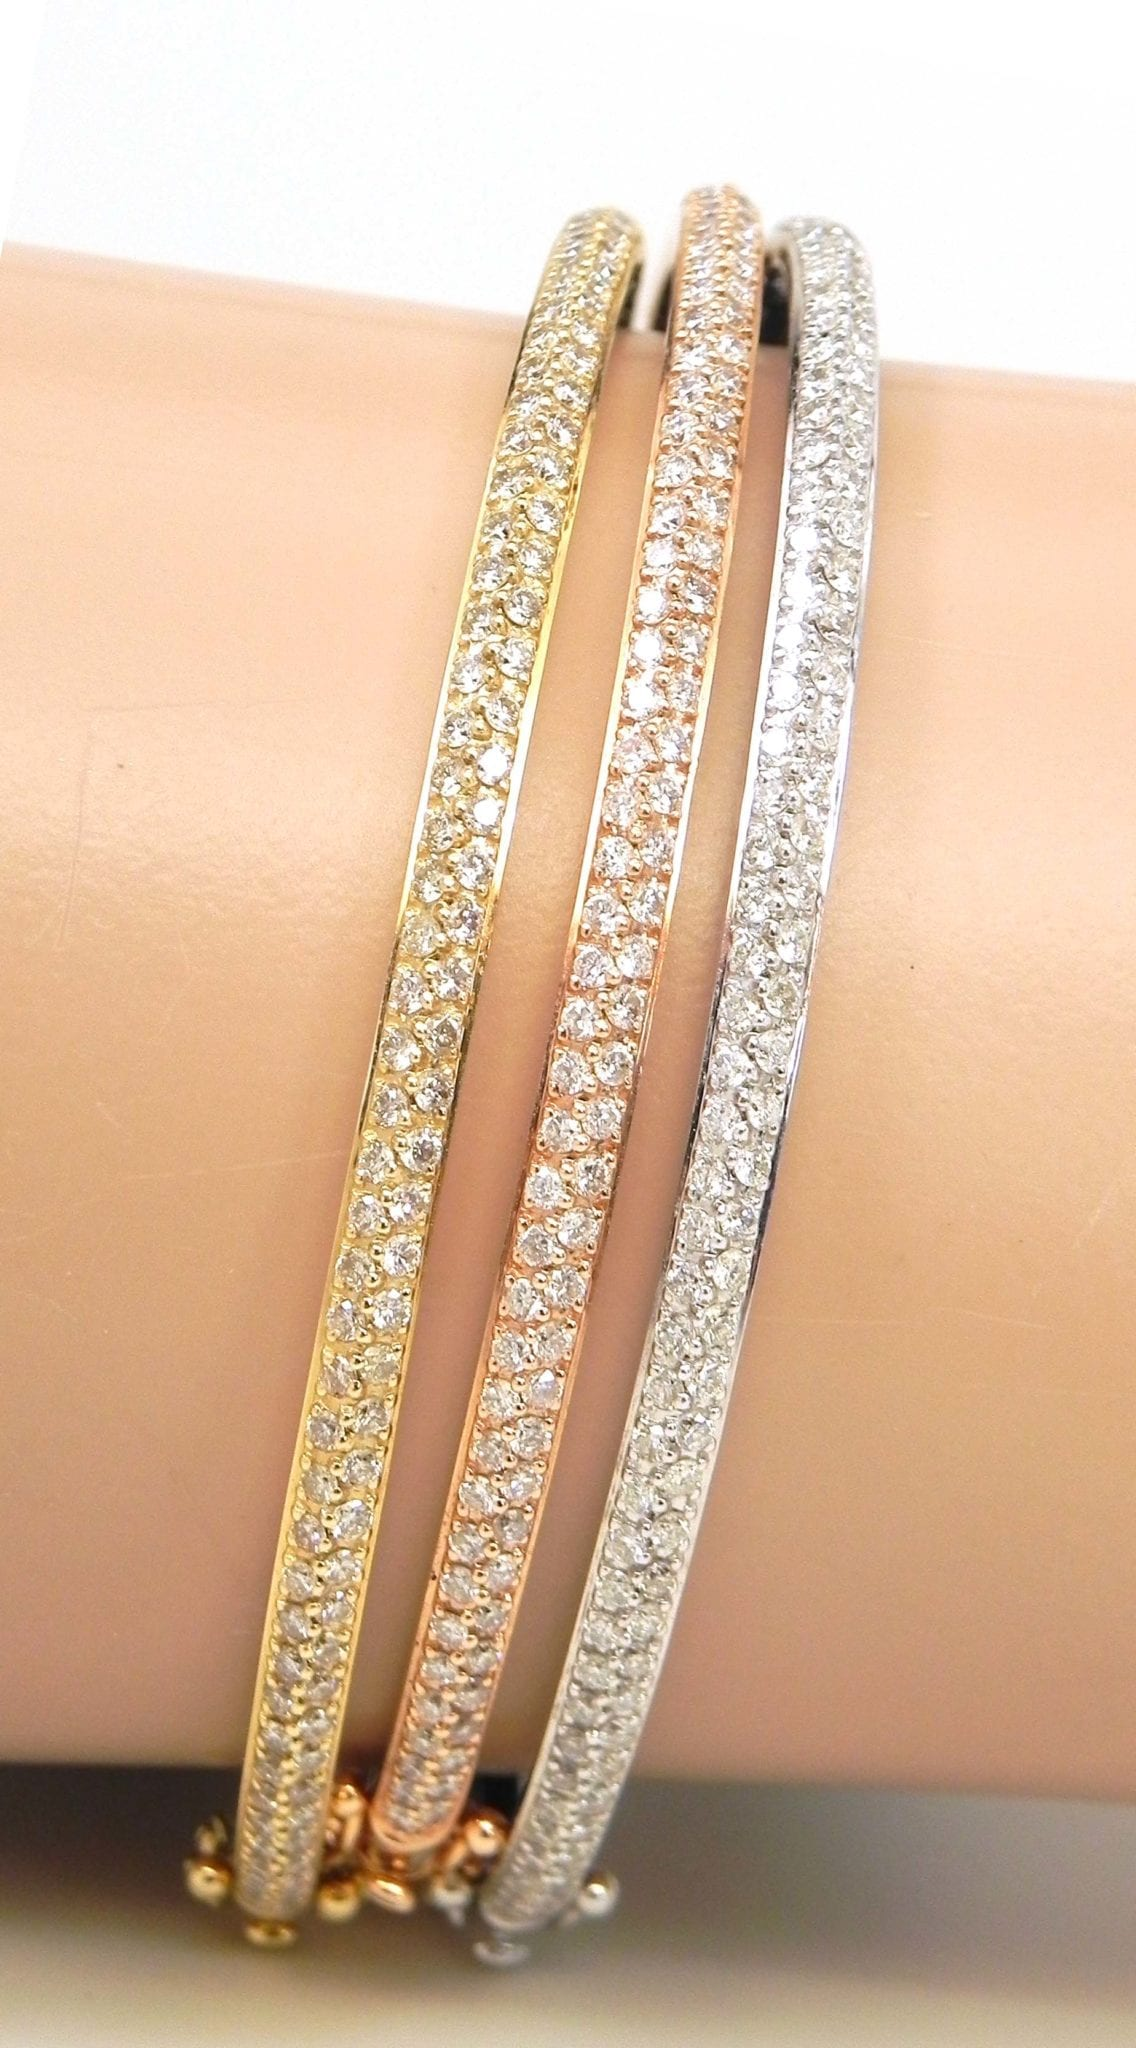 bangles avanti image bangle diamond womens bracelets white from gold